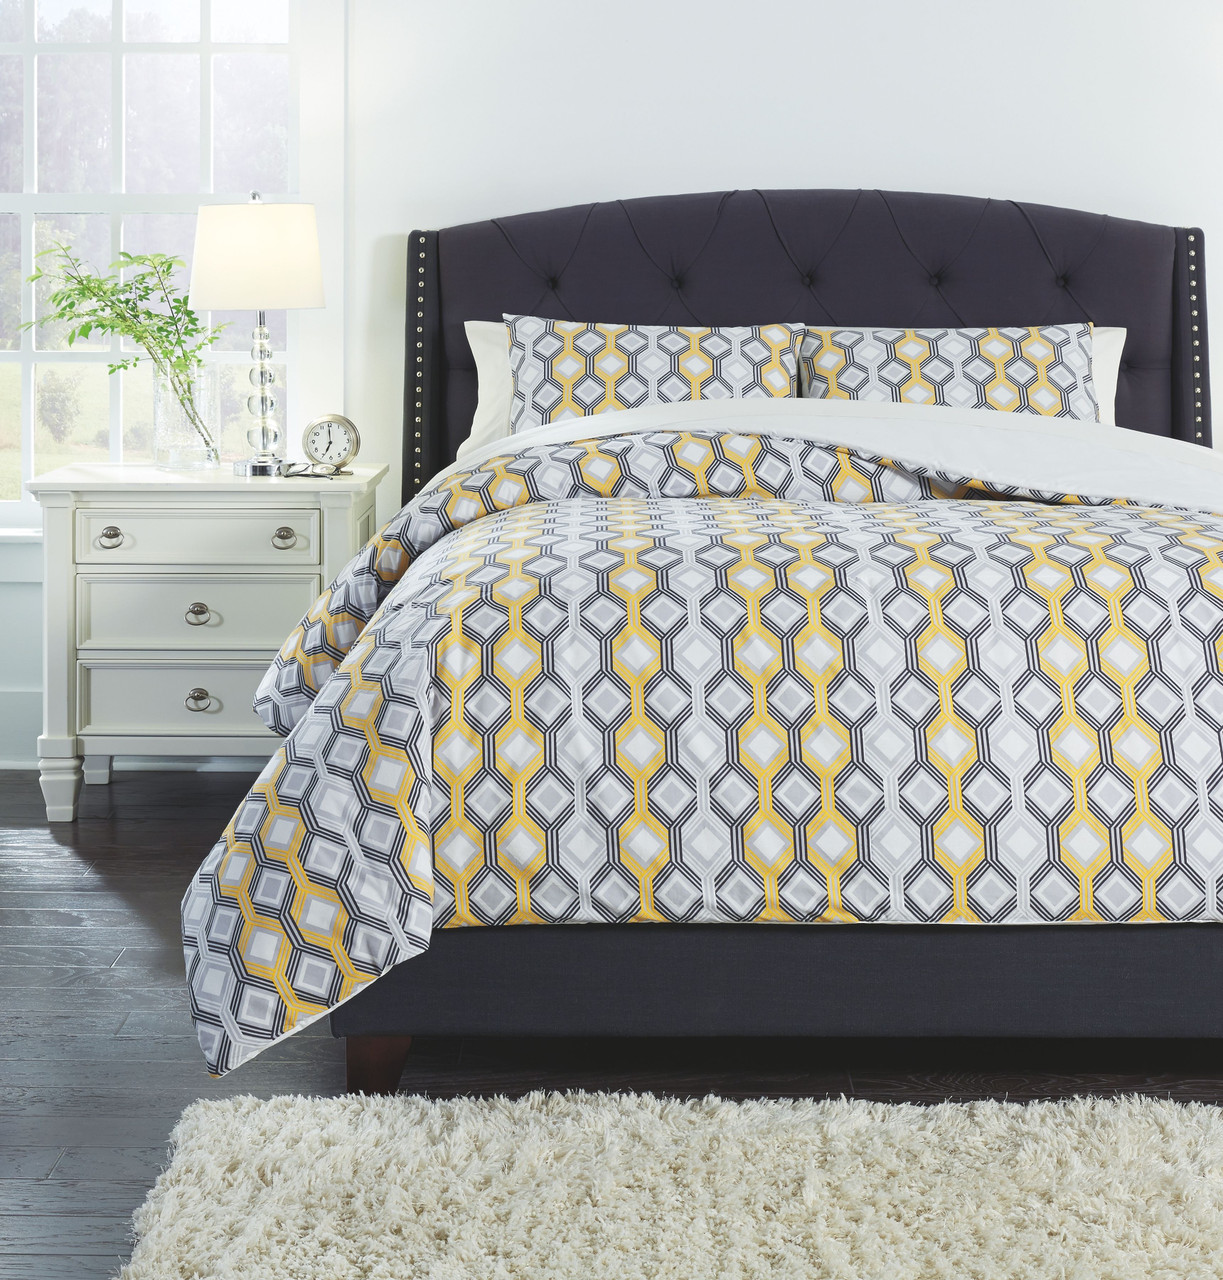 Picture of: The Mato Gray Yellow White Queen Comforter Set Available At Furniture Direct Serving Hattiesburg Ms And Surrounding Areas